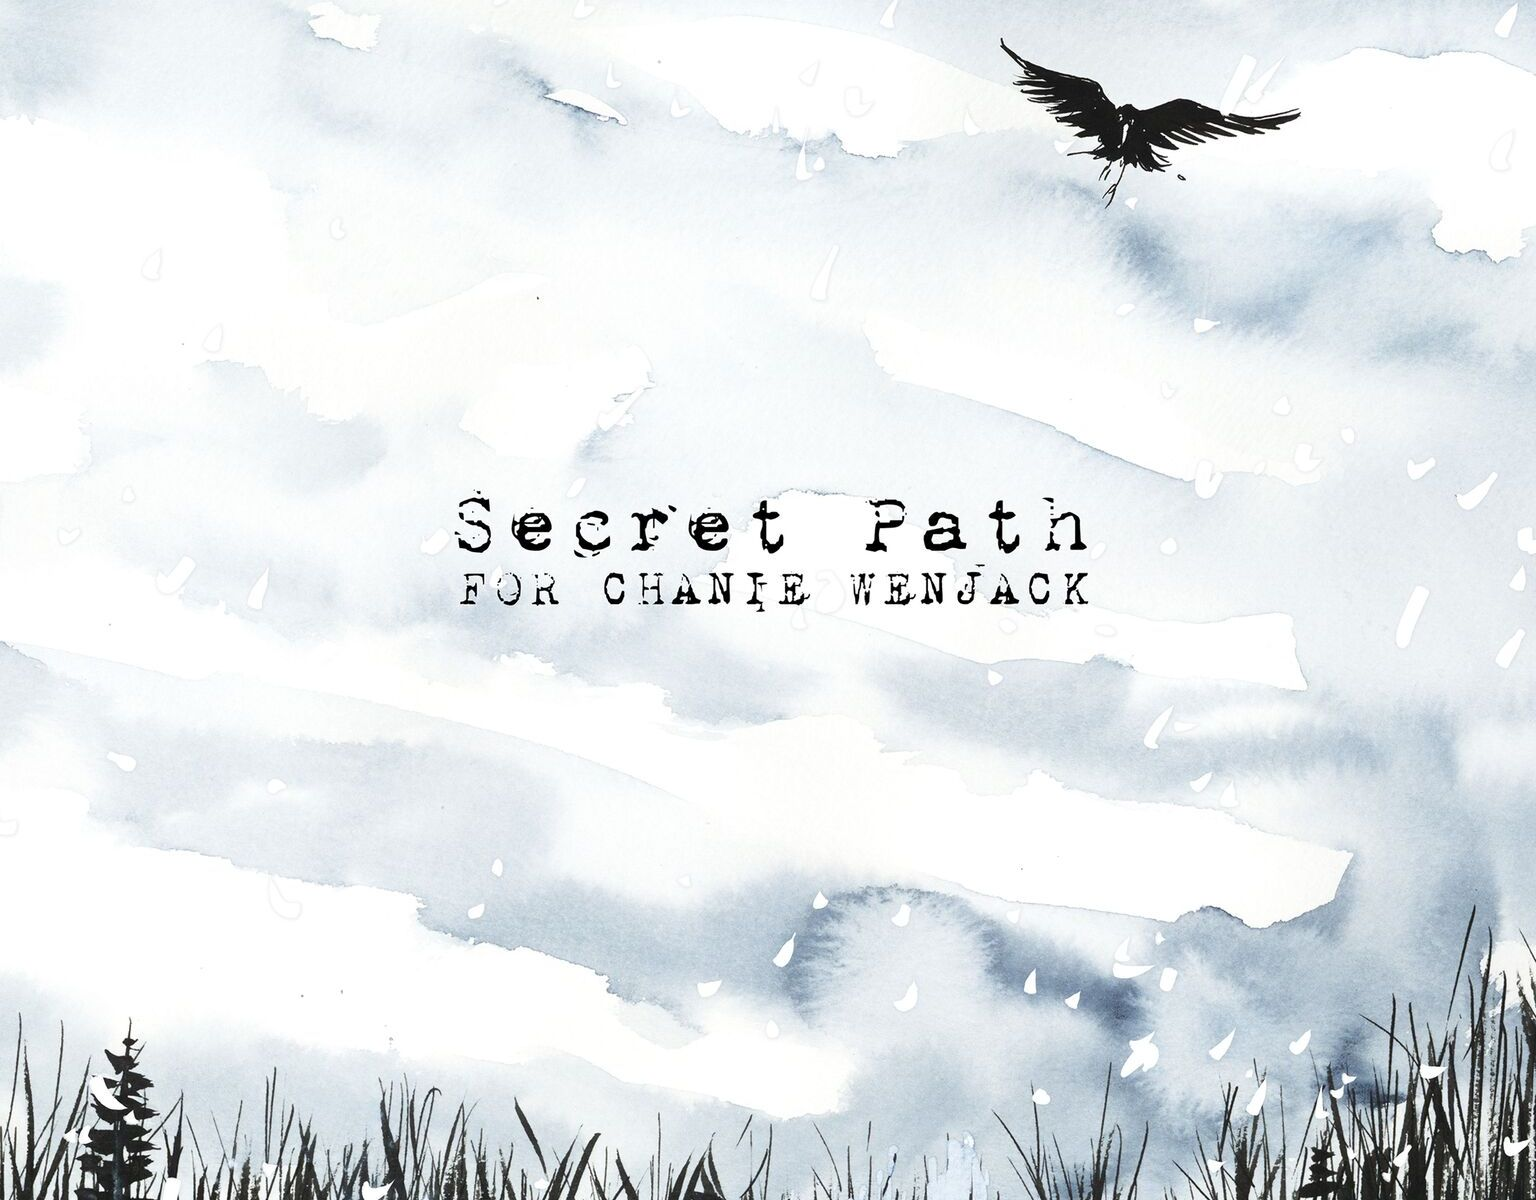 Secret Path by Gord Downie and Jeff Lemire